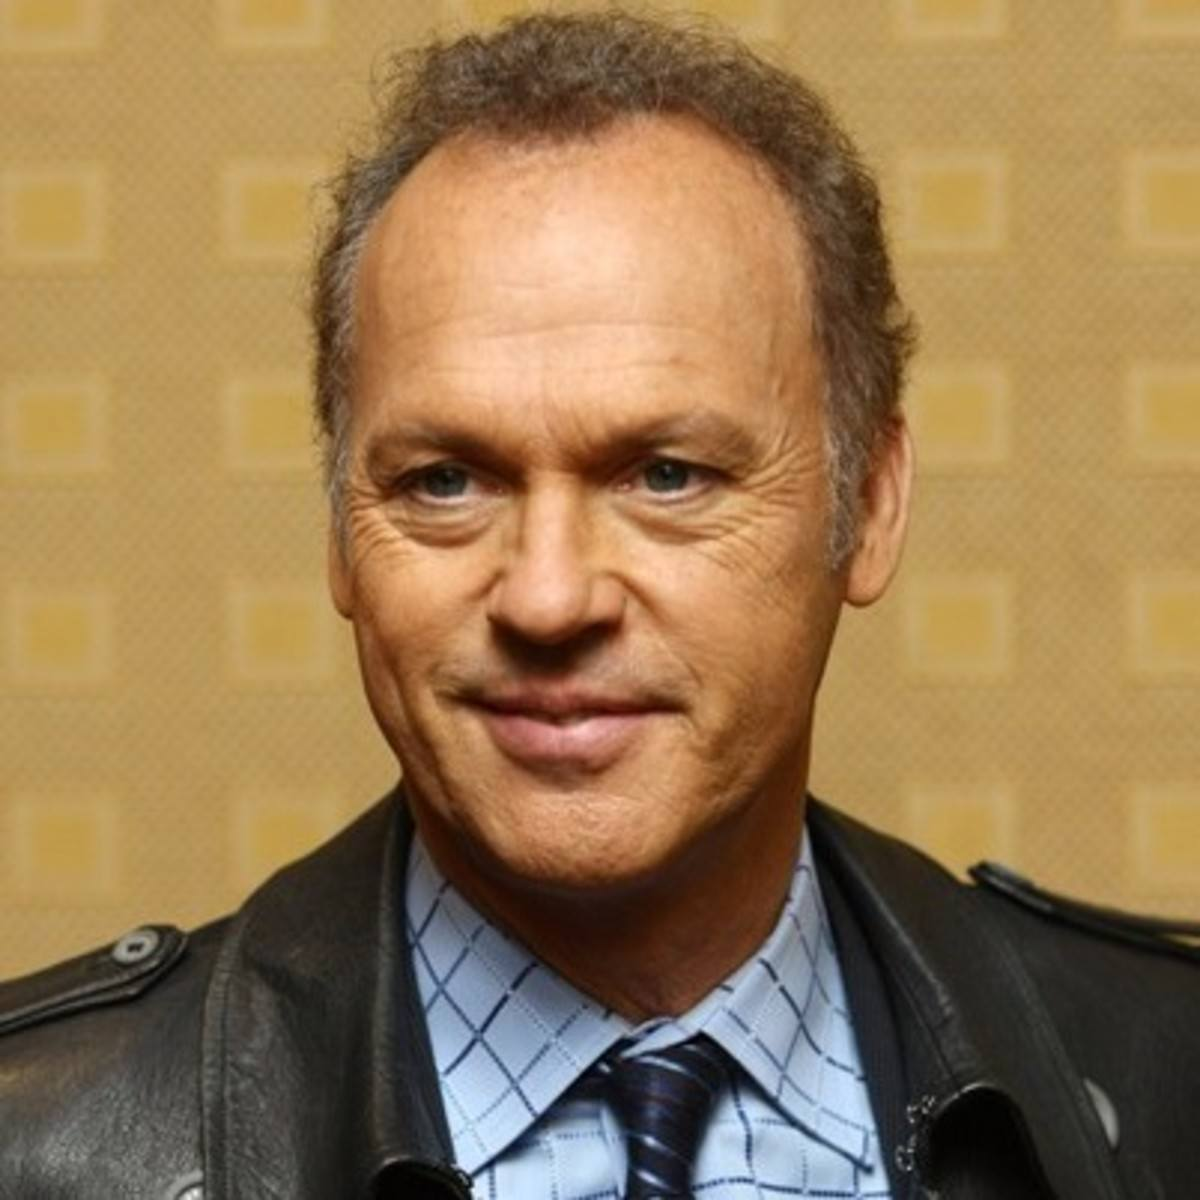 19 1 20 Facts You Probably Didn't Know About Michael Keaton